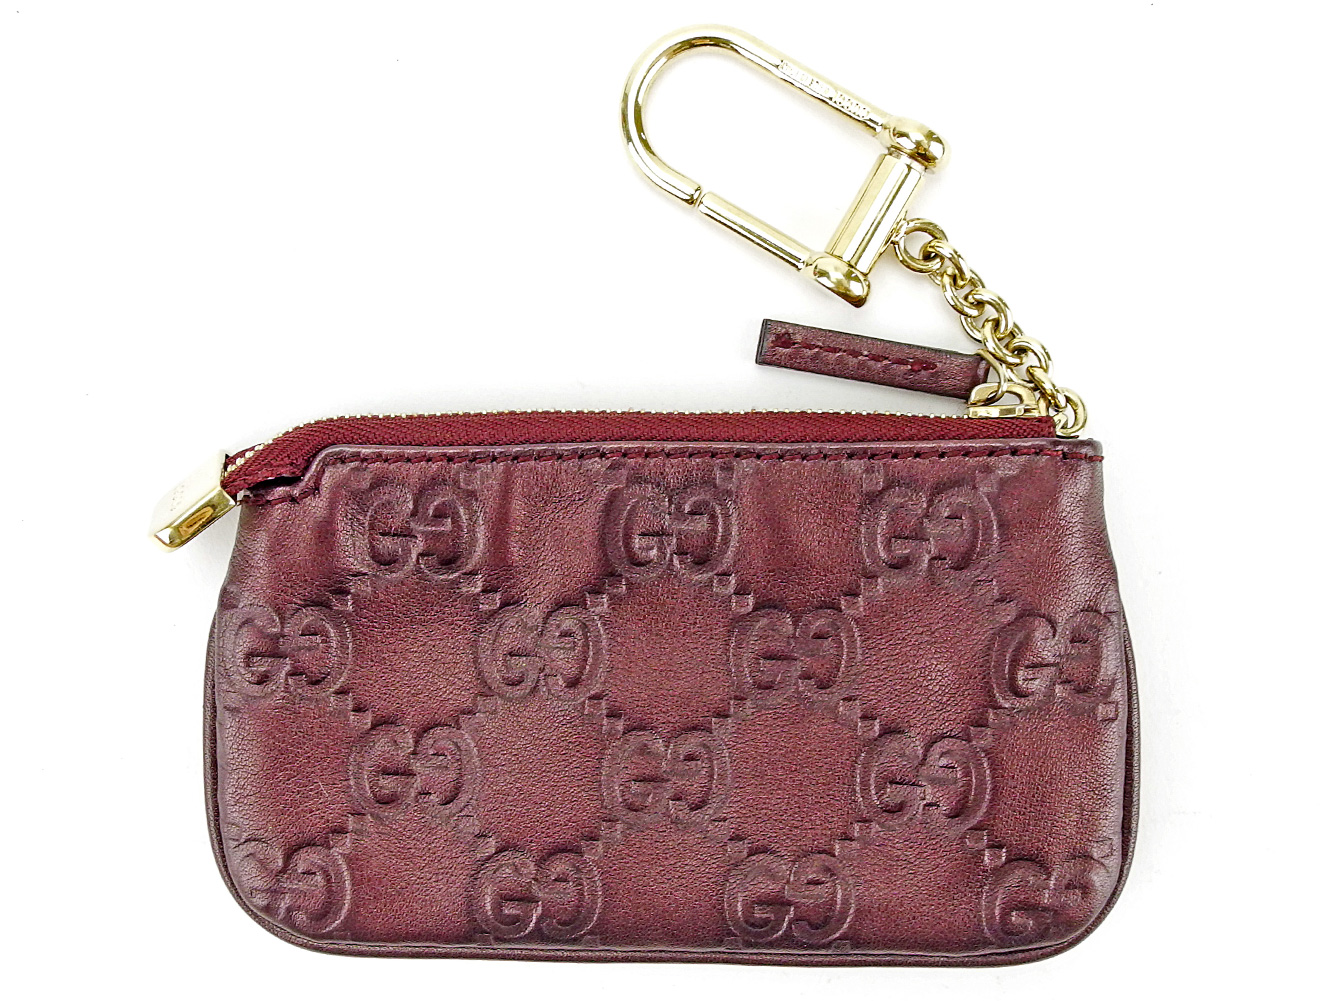 b9bb7df35ab5 ... Gucci sima dark purple X gold leather beauty product sale T3681 with  the Gucci GUCCI coin ...